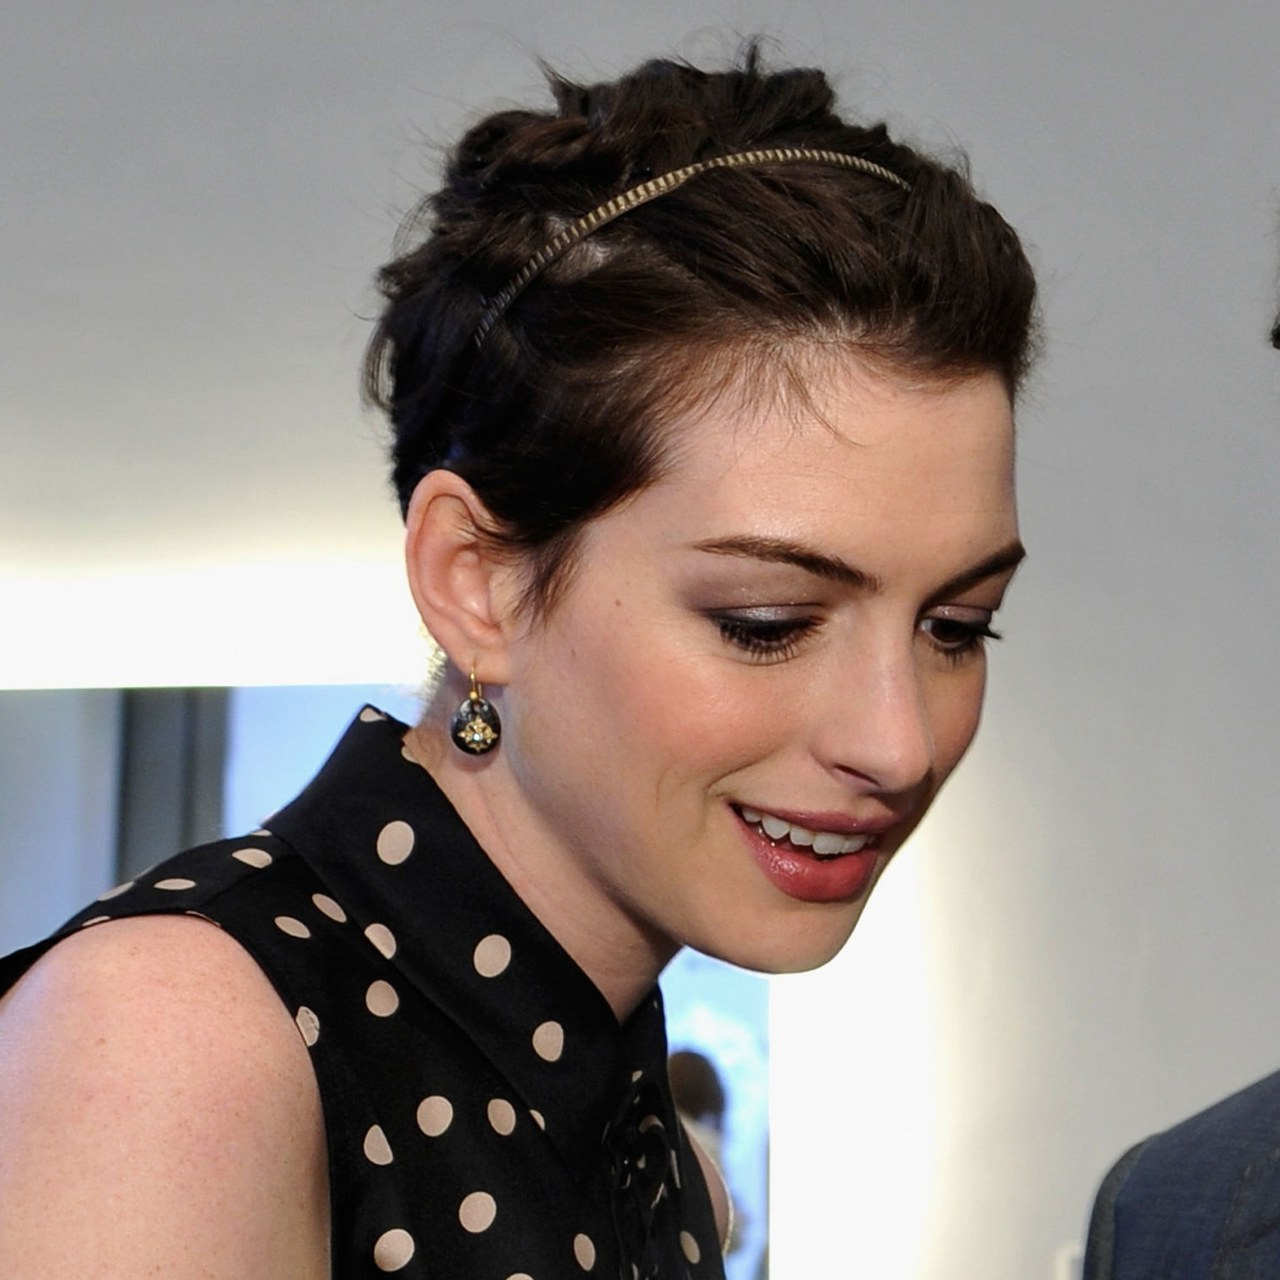 Anne Hathaway Uses A Headband To Create A Cute Hairstyle For Her In Short Hairstyles With Headbands (Gallery 9 of 25)